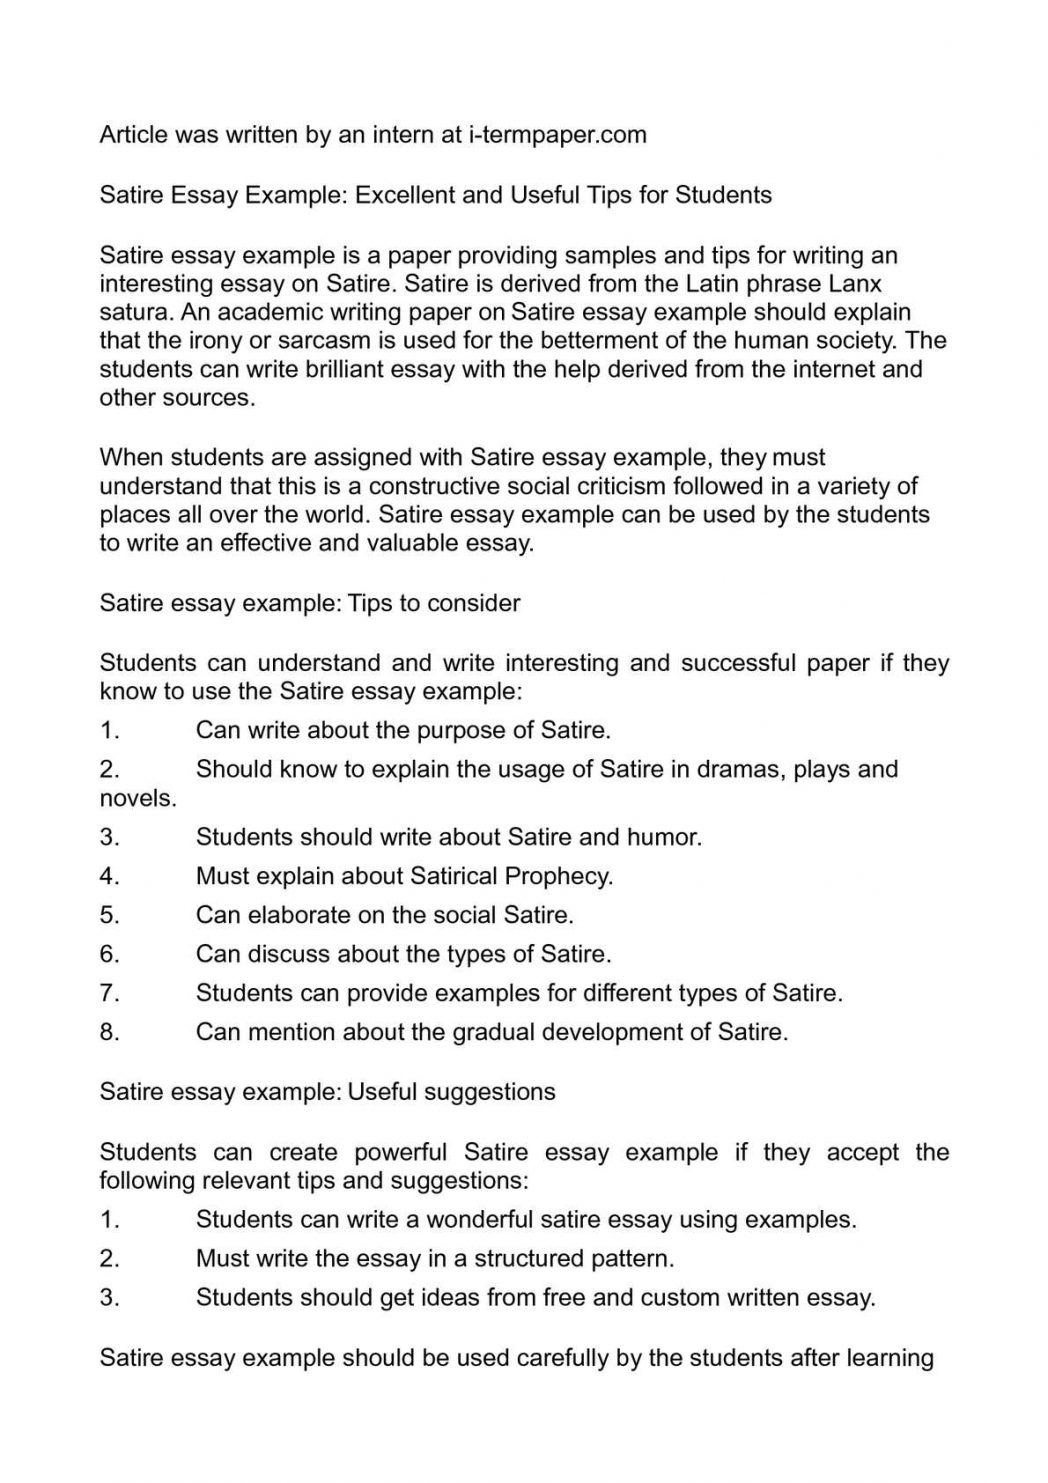 001 Satire Essays Human Evolution Of Satirical Essa Character 1048x1483 Excellent Essay Examples On Abortion Gun Control Obesity Full